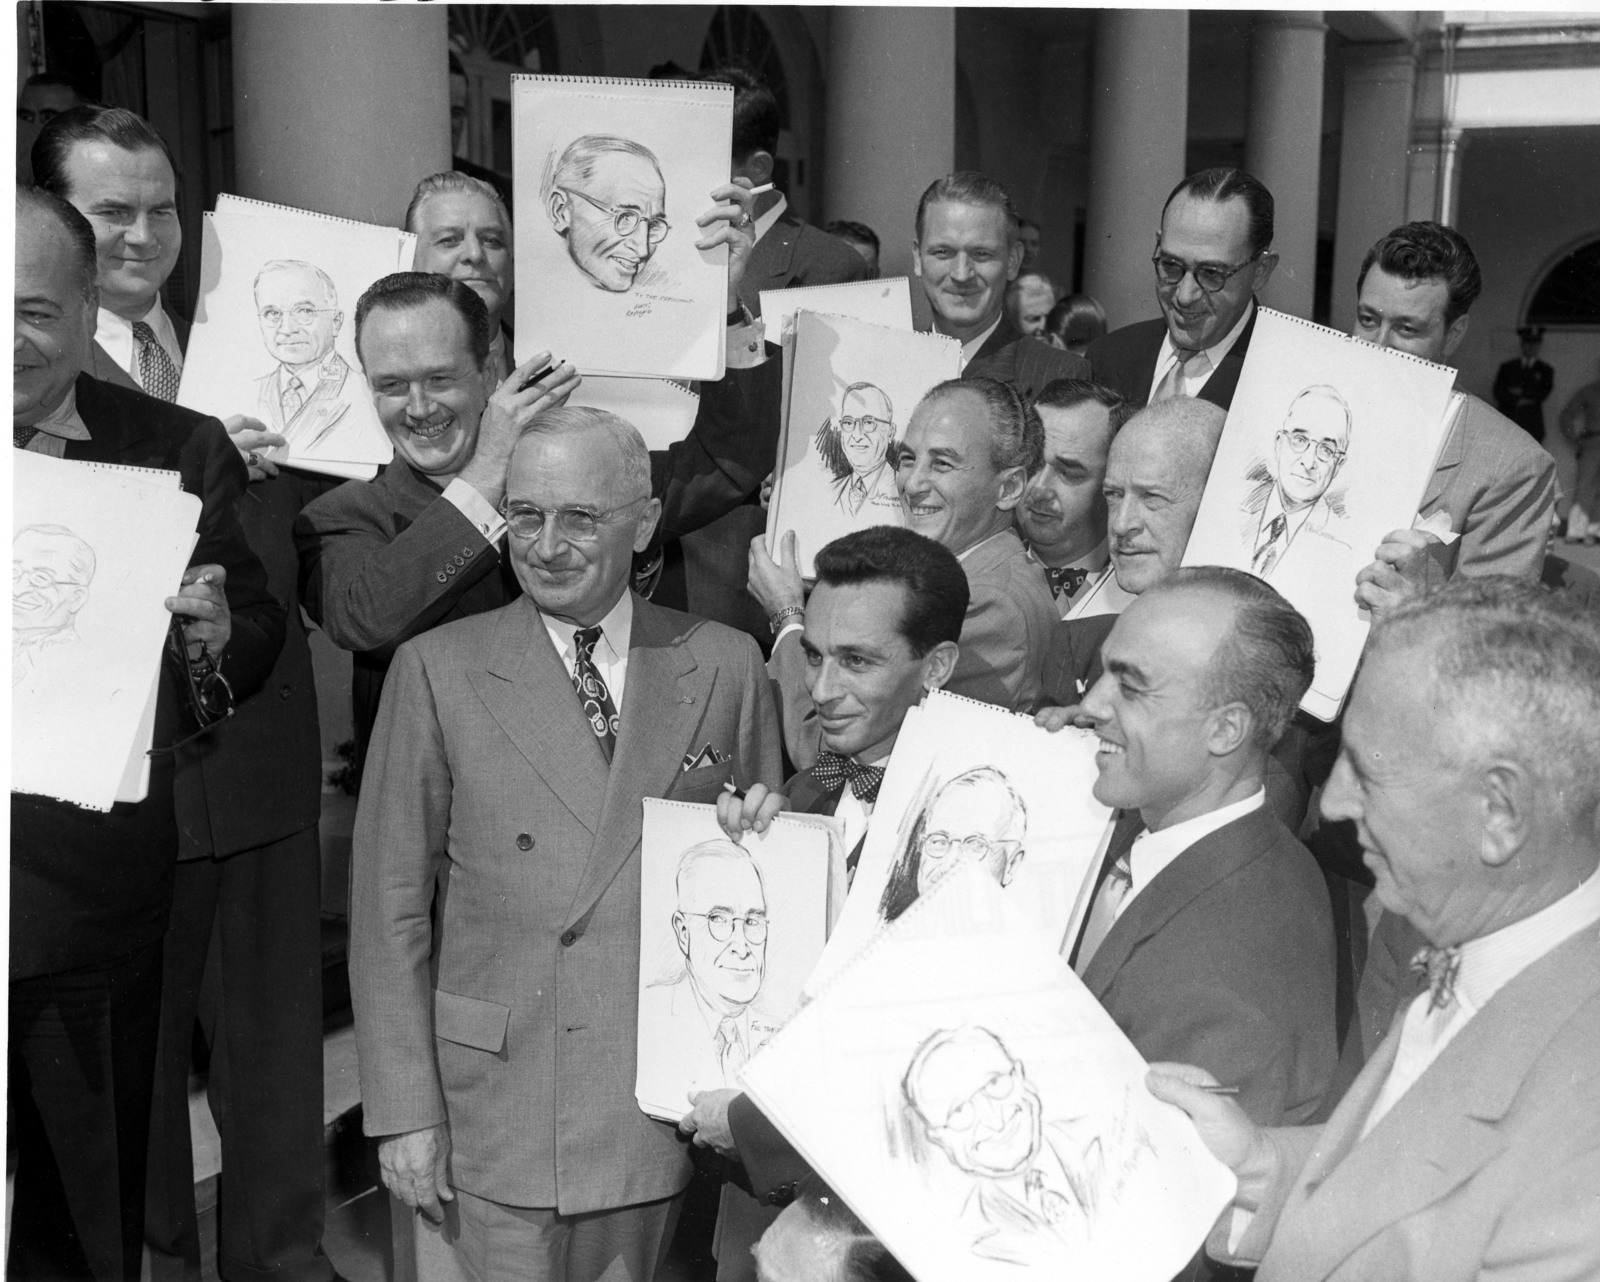 President Harry S. Truman Poses With Completed Cartoon Portraits